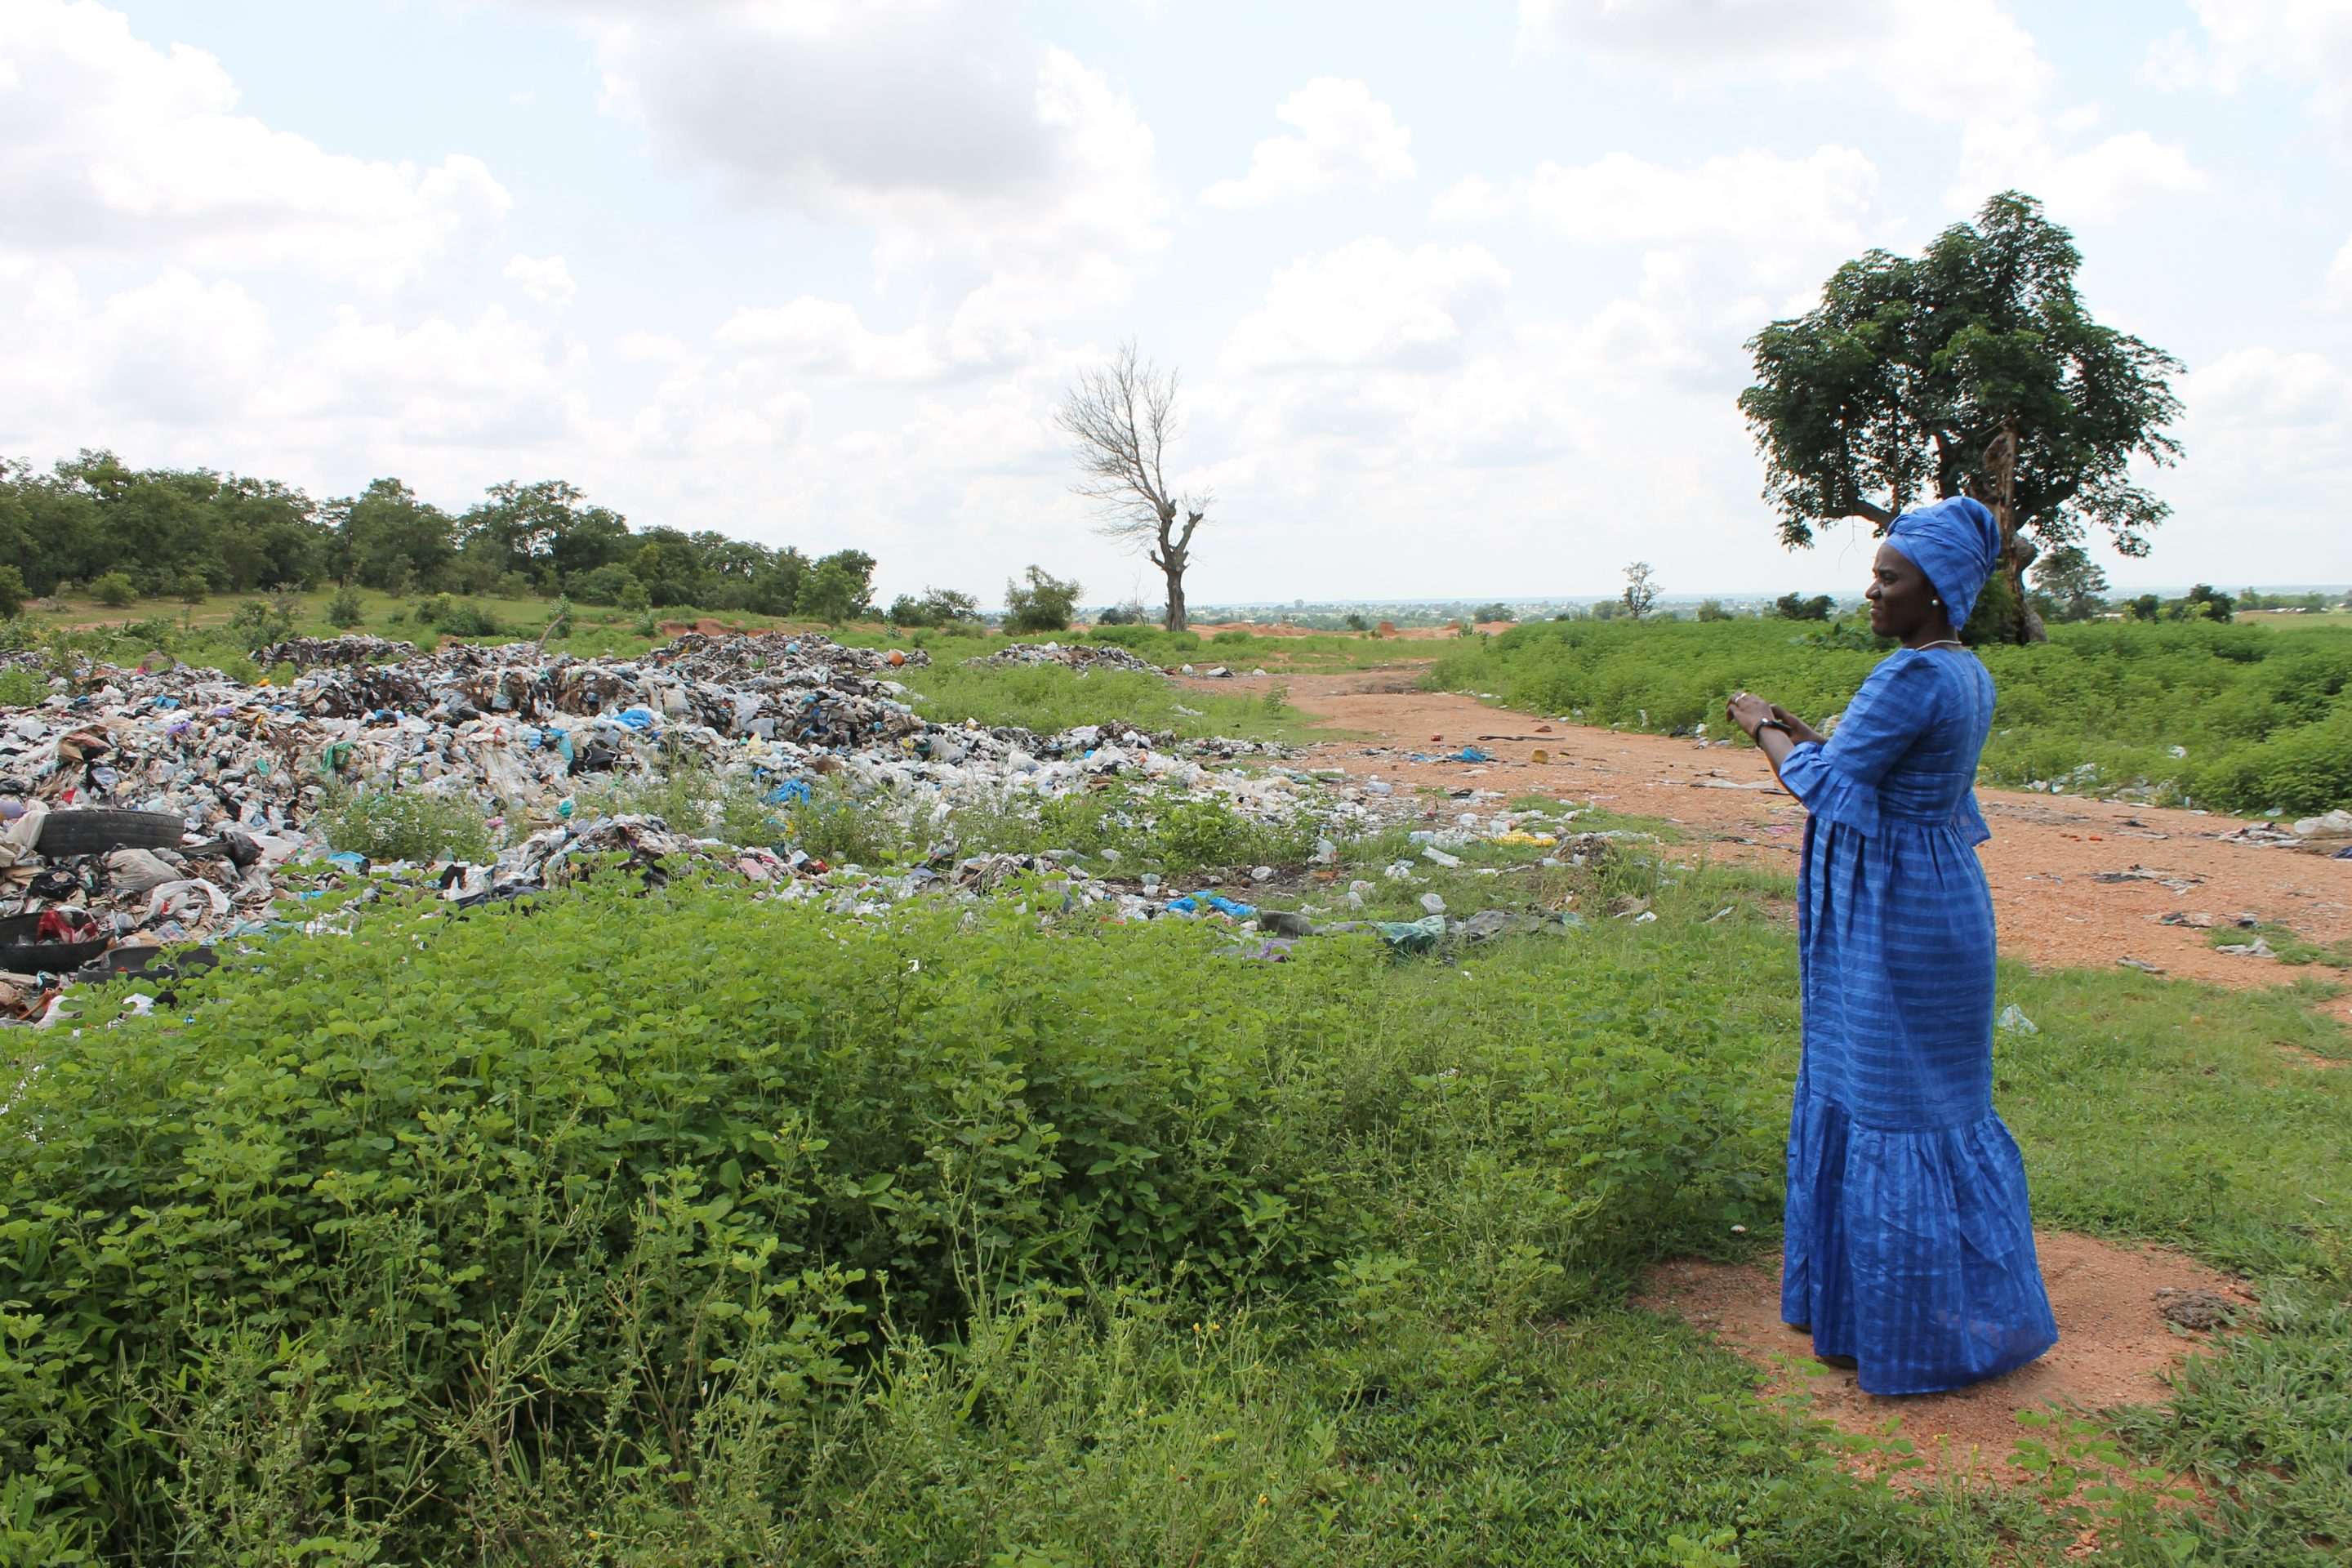 Isatou Ceesay stands next to an open dump